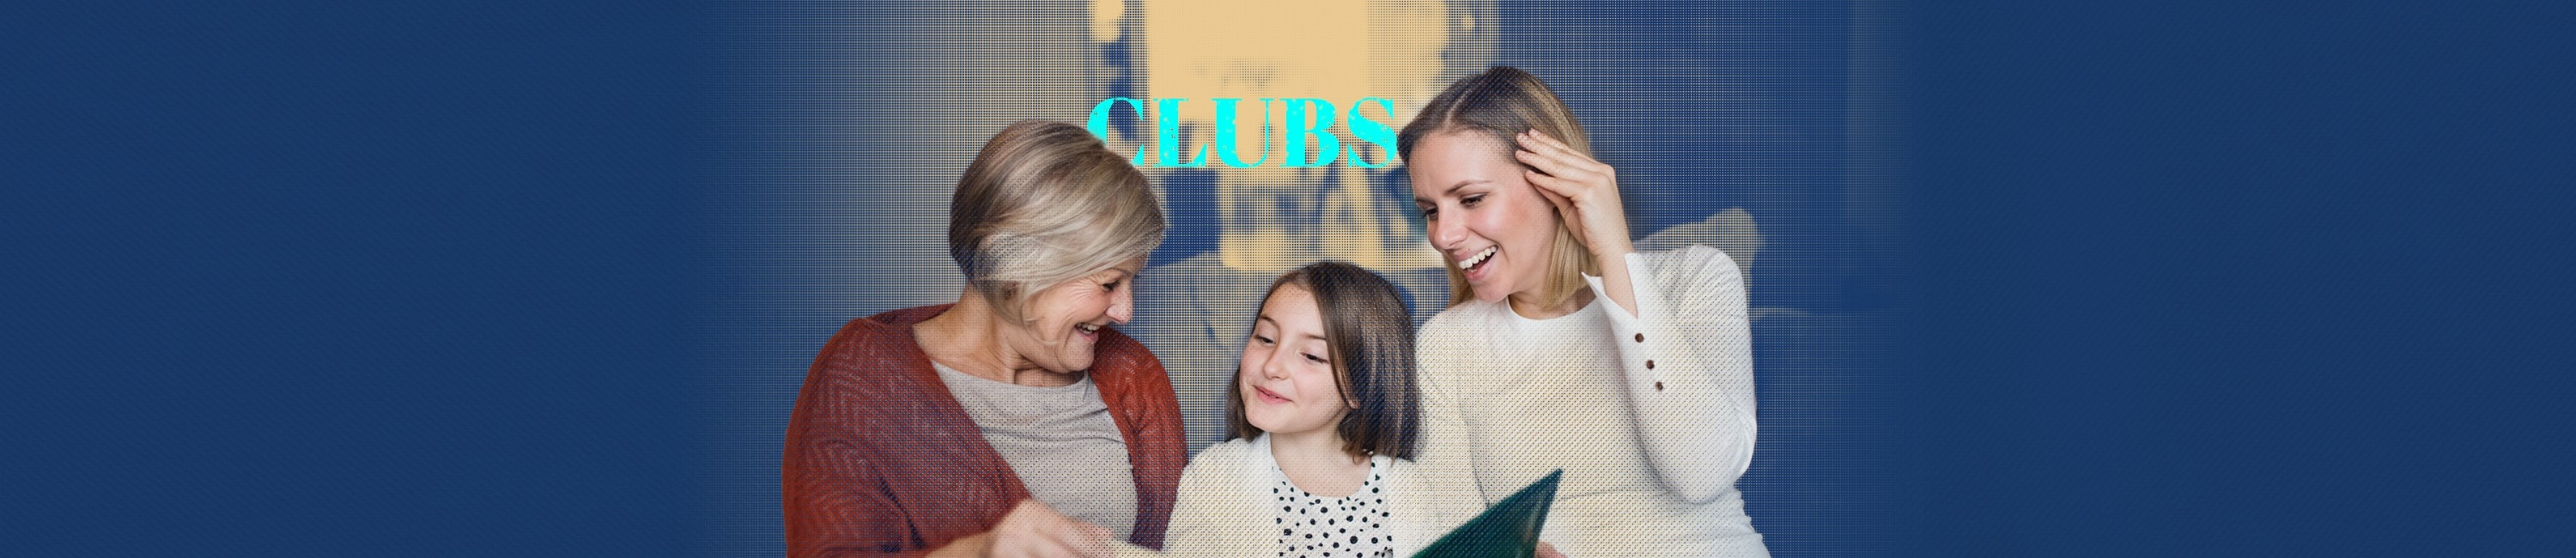 three generations of women enjoying time on a couch together at a club event through Fidelity Bank & Trust. Word on photo says Clubs